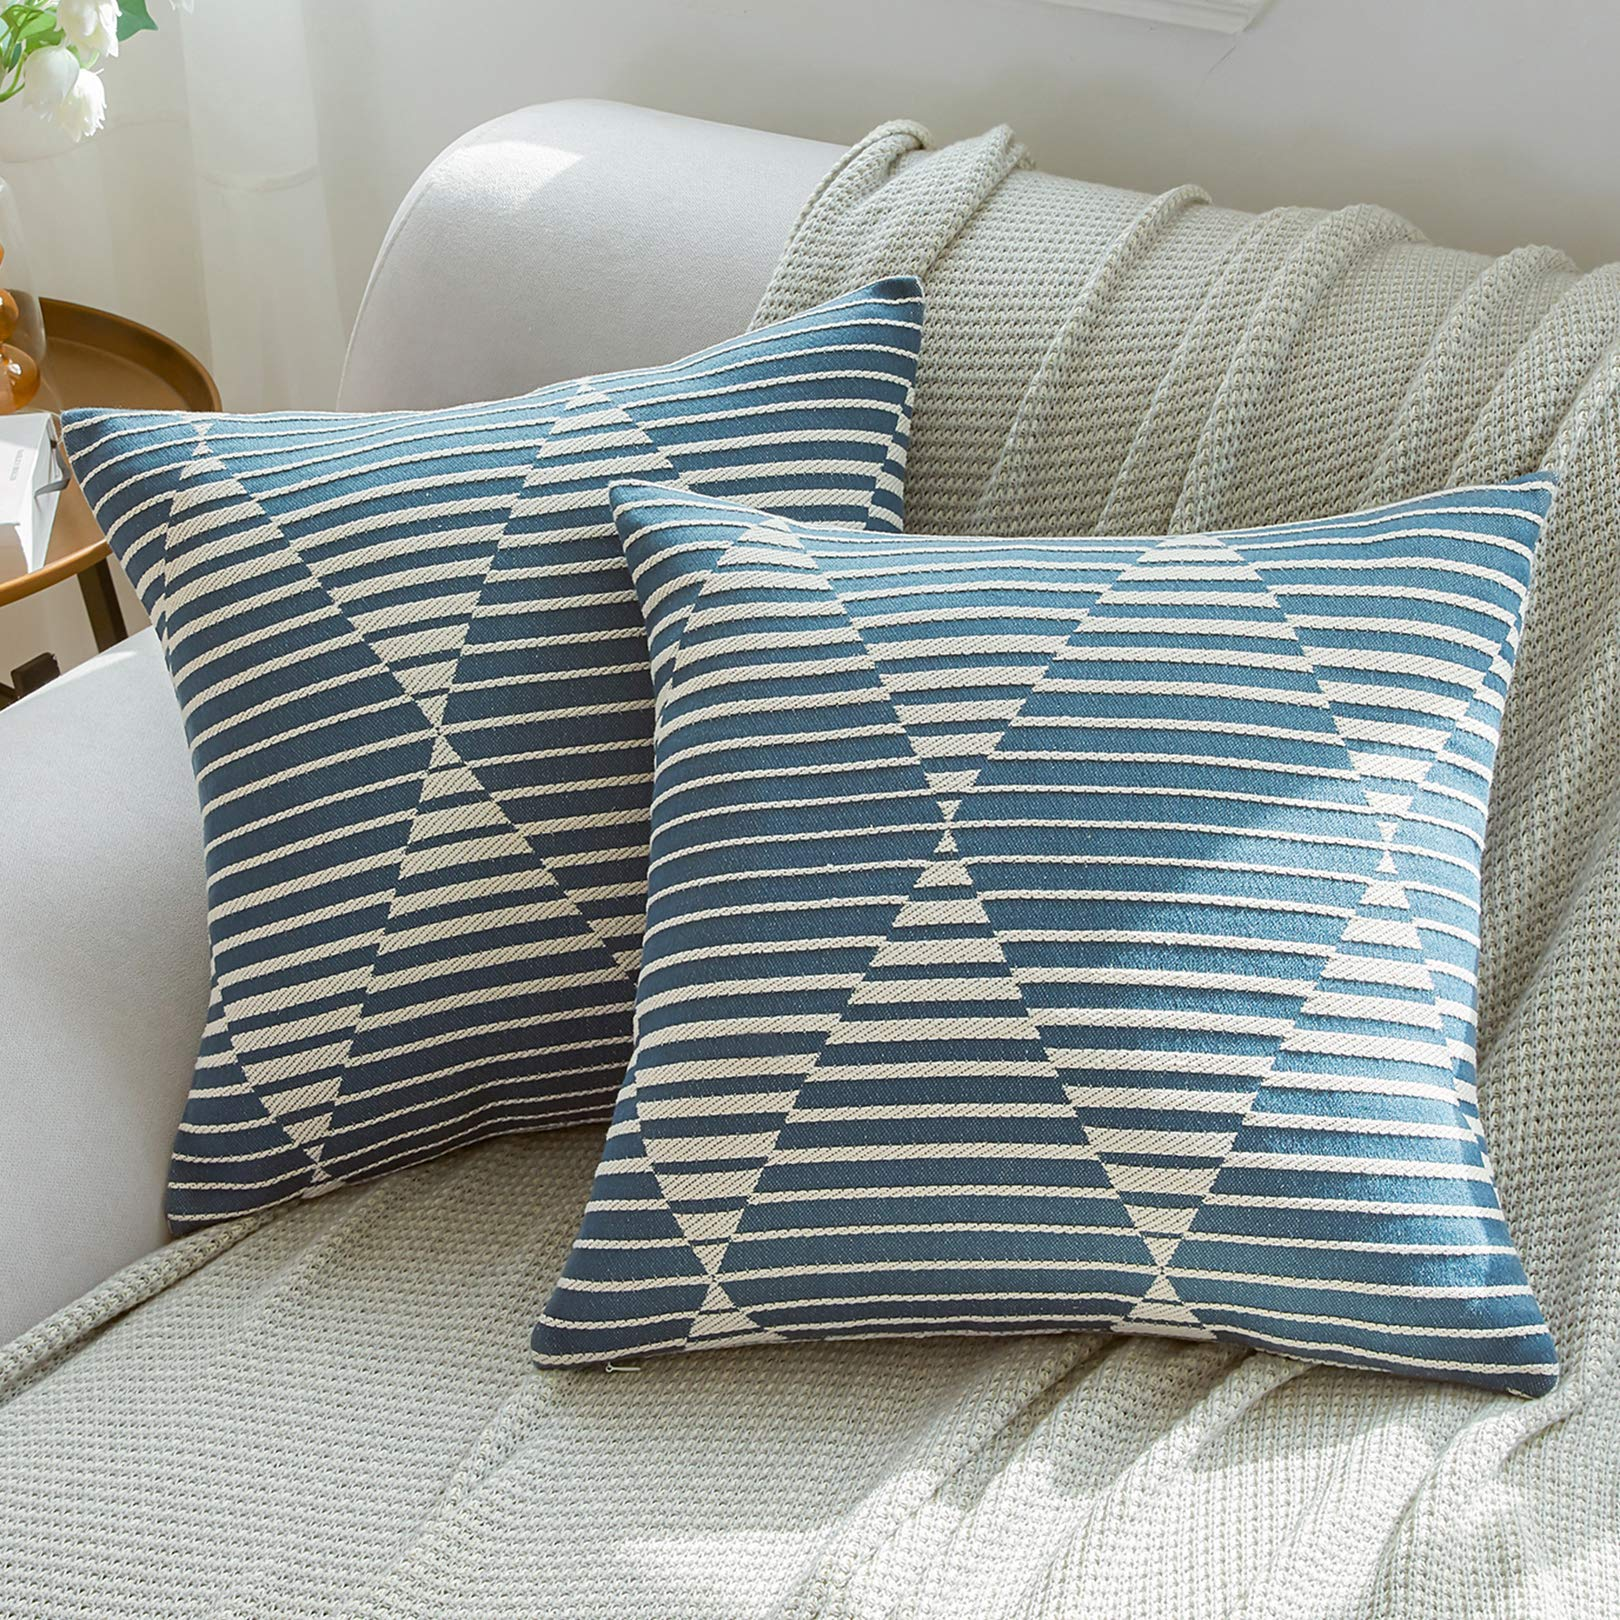 Basic Model Pack of 2 Geometric Decorative Throw Pillow Covers Blue Cushion Cover Square Pillowcases for Sofa, 18x18 Inches